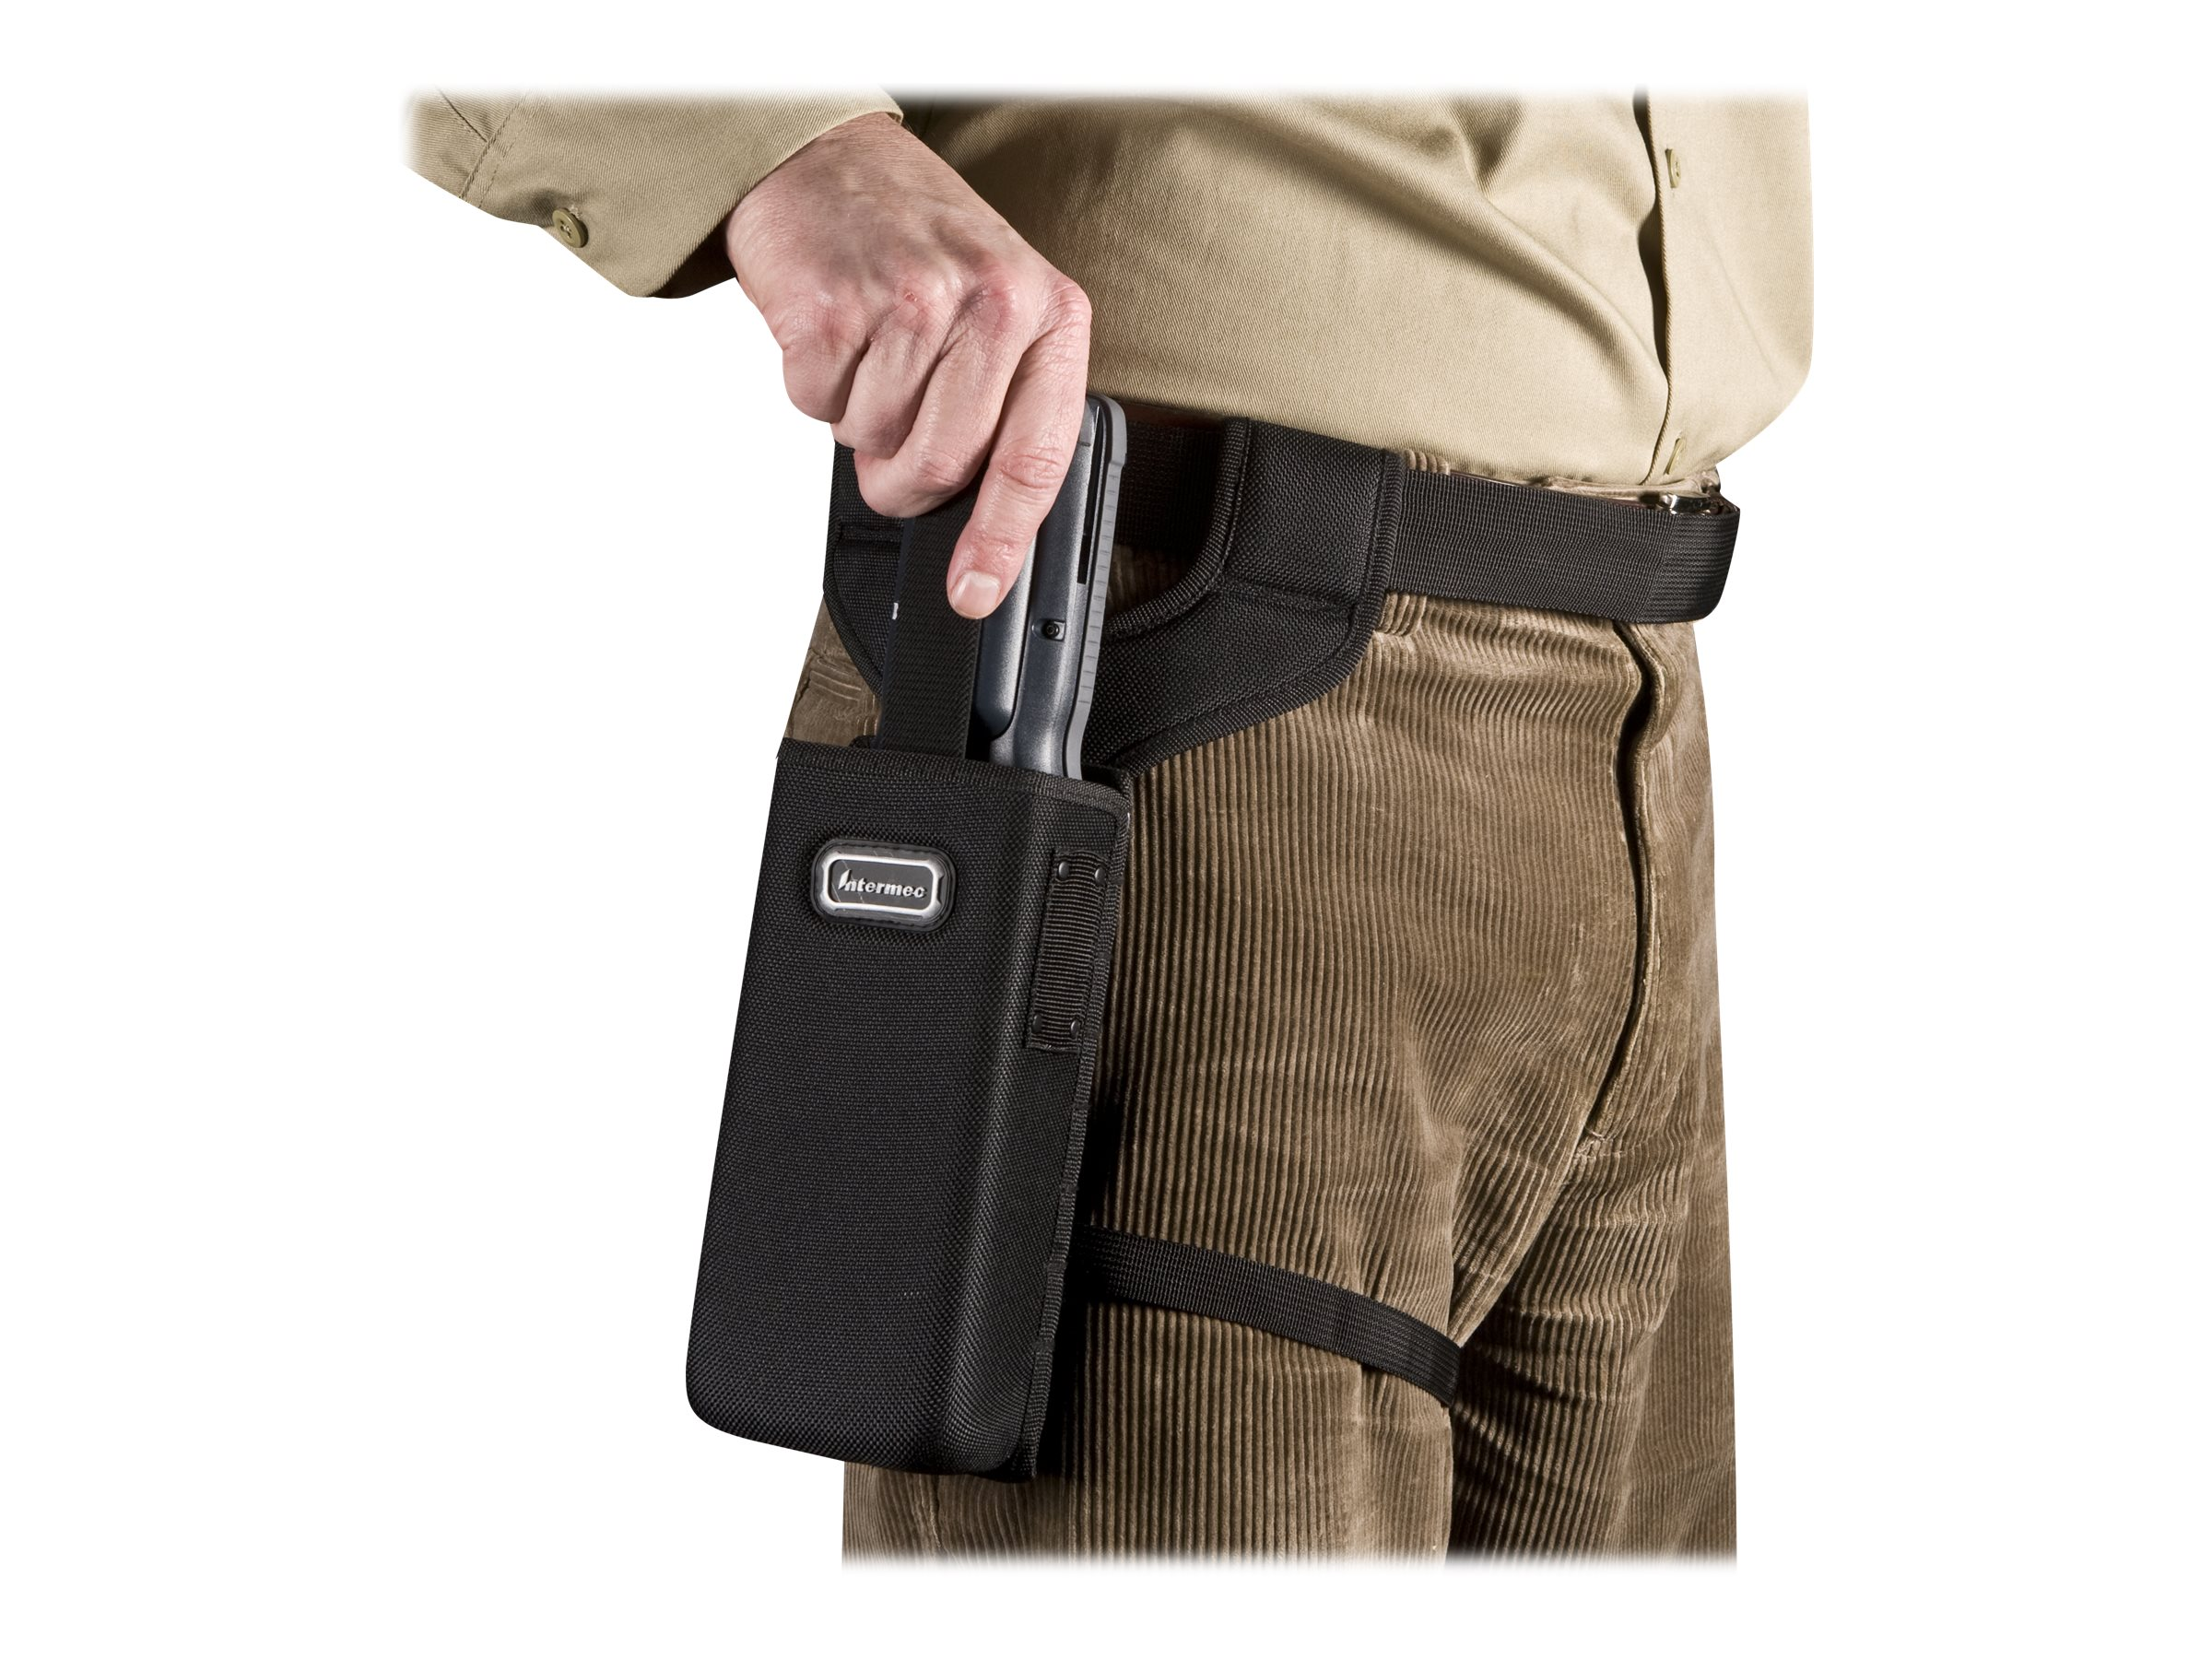 HONEYWELL Handheld-Holster - für Honeywell CK71